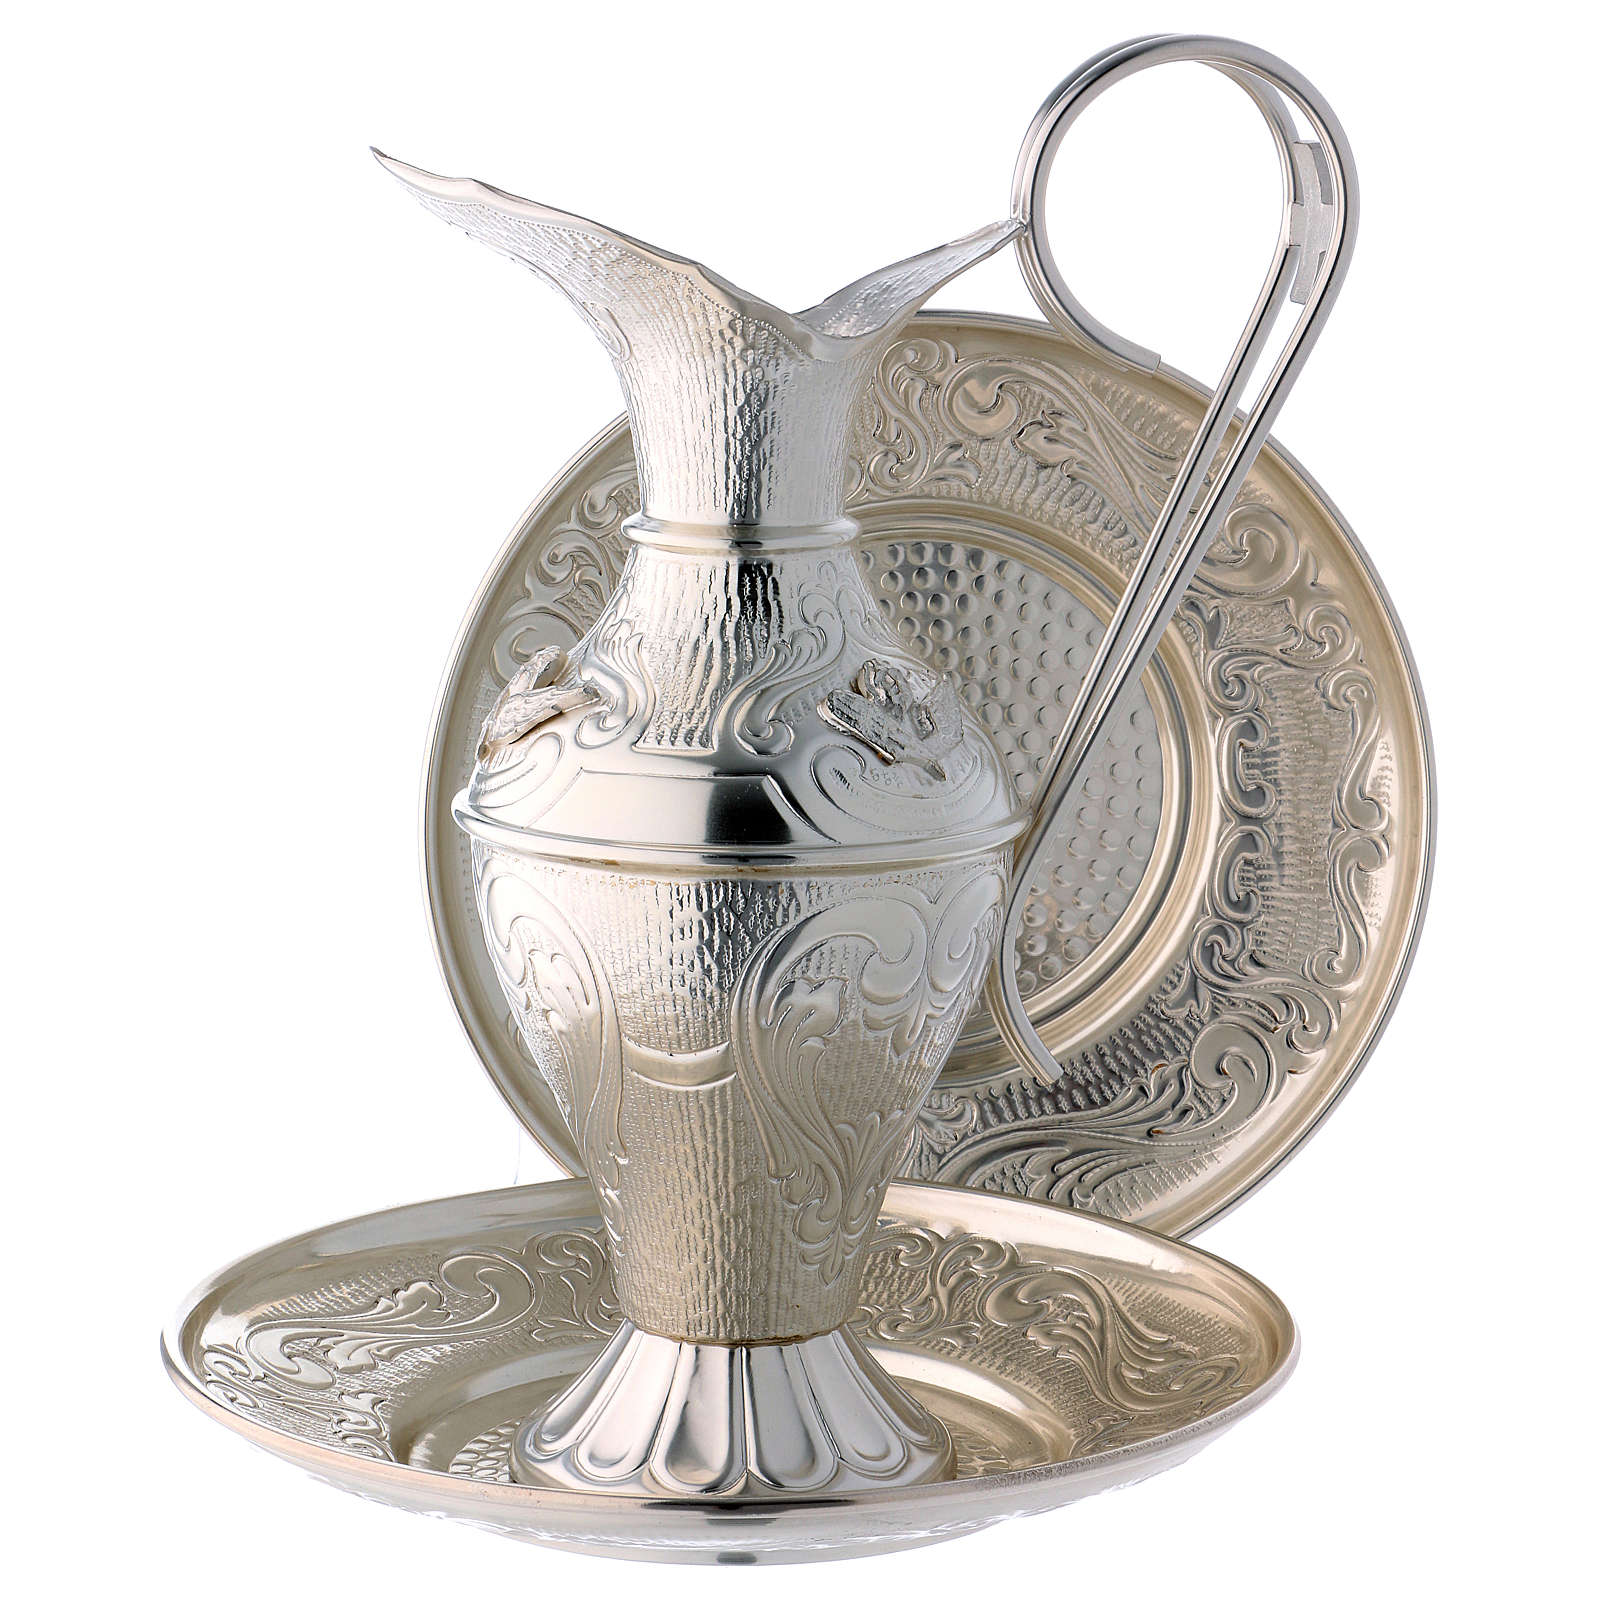 Ewer set with chiselled angels 3